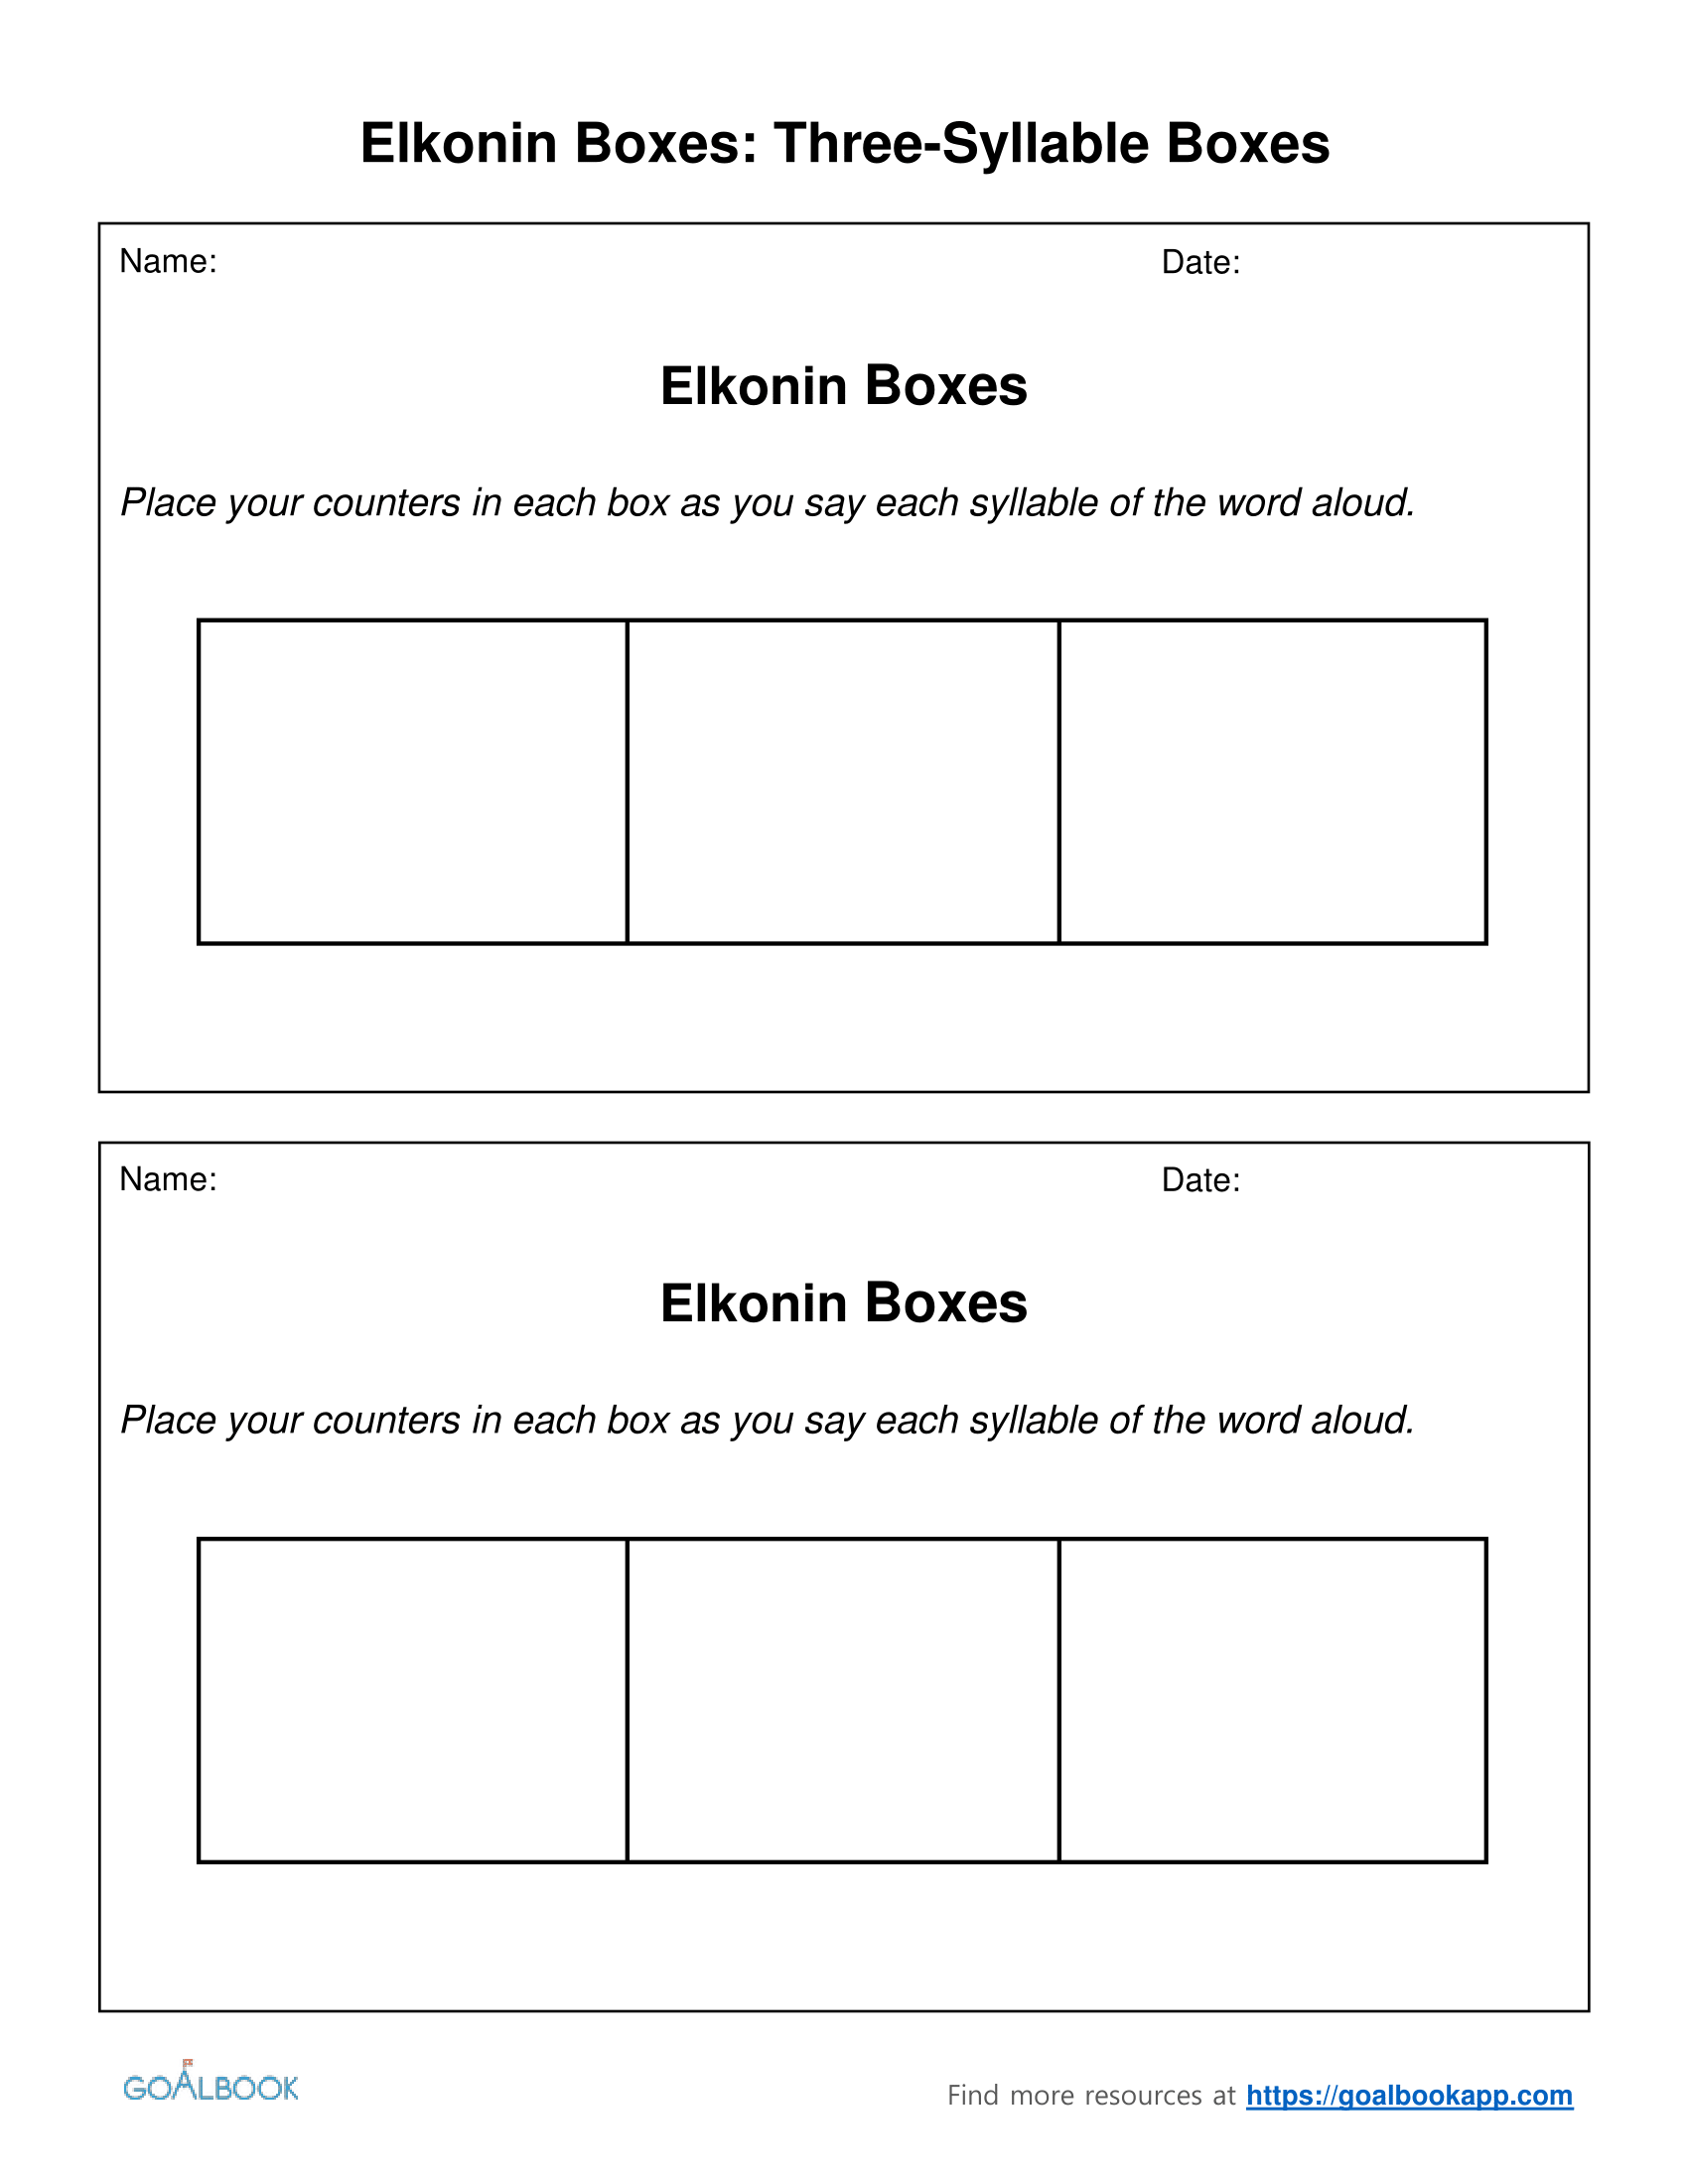 Elkonin boxes udl strategies for Elkonin boxes template